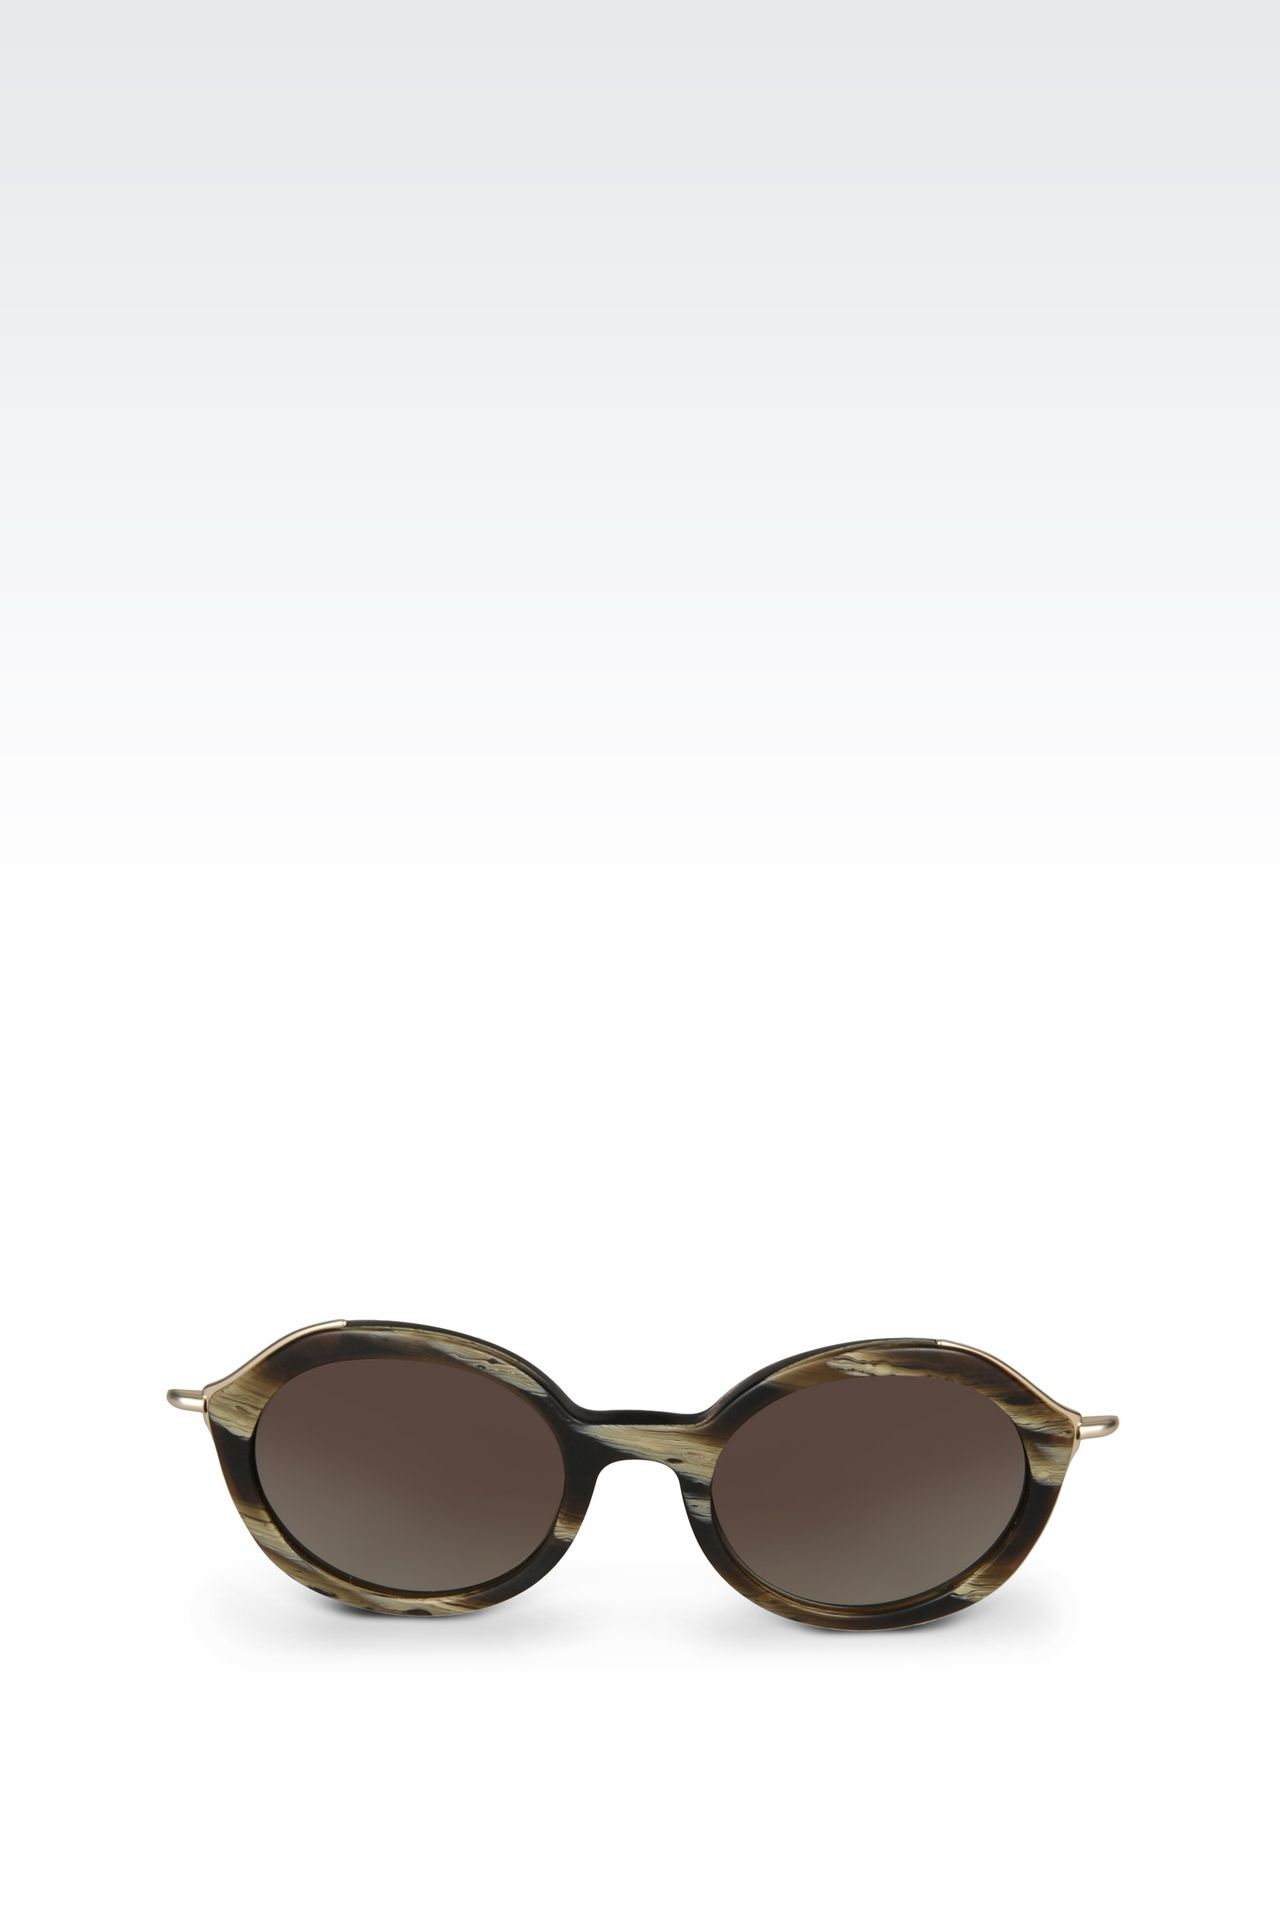 sunglasses from the giorgio armani frames of life collection sunglasses women by armani 0